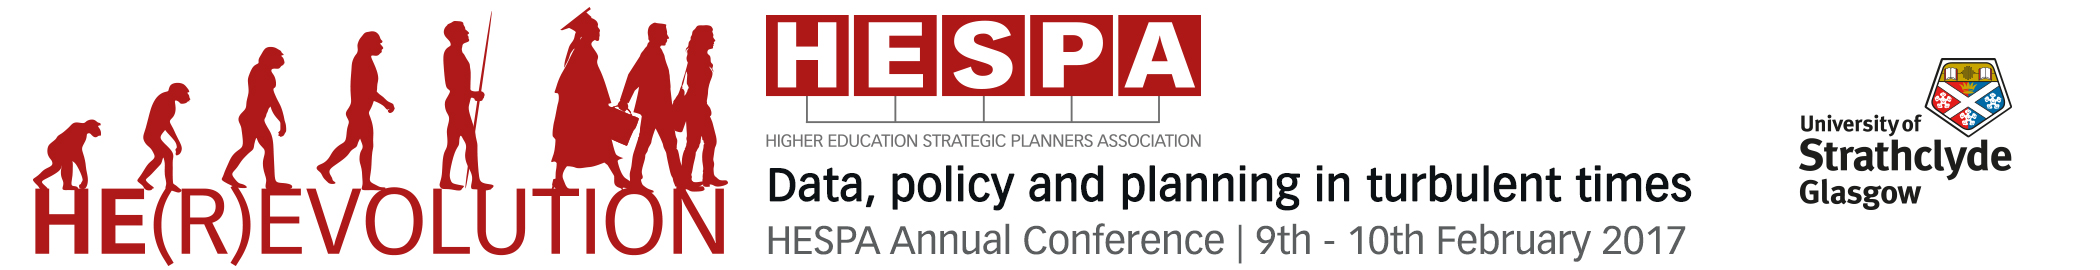 HESPA Annual Conference 2017